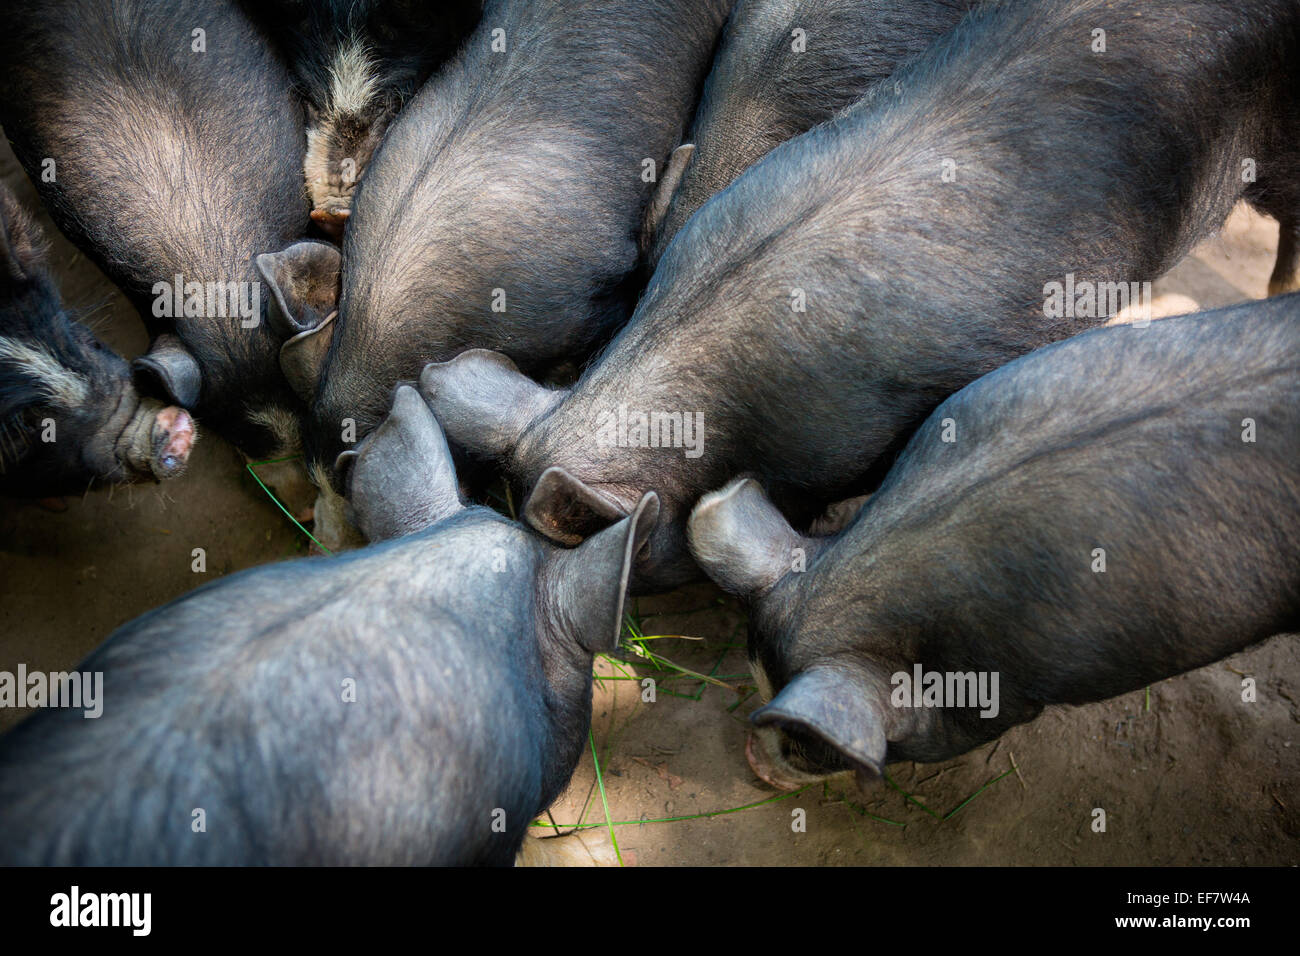 Free range berkshire pigs foraging, overhead view Stock Photo